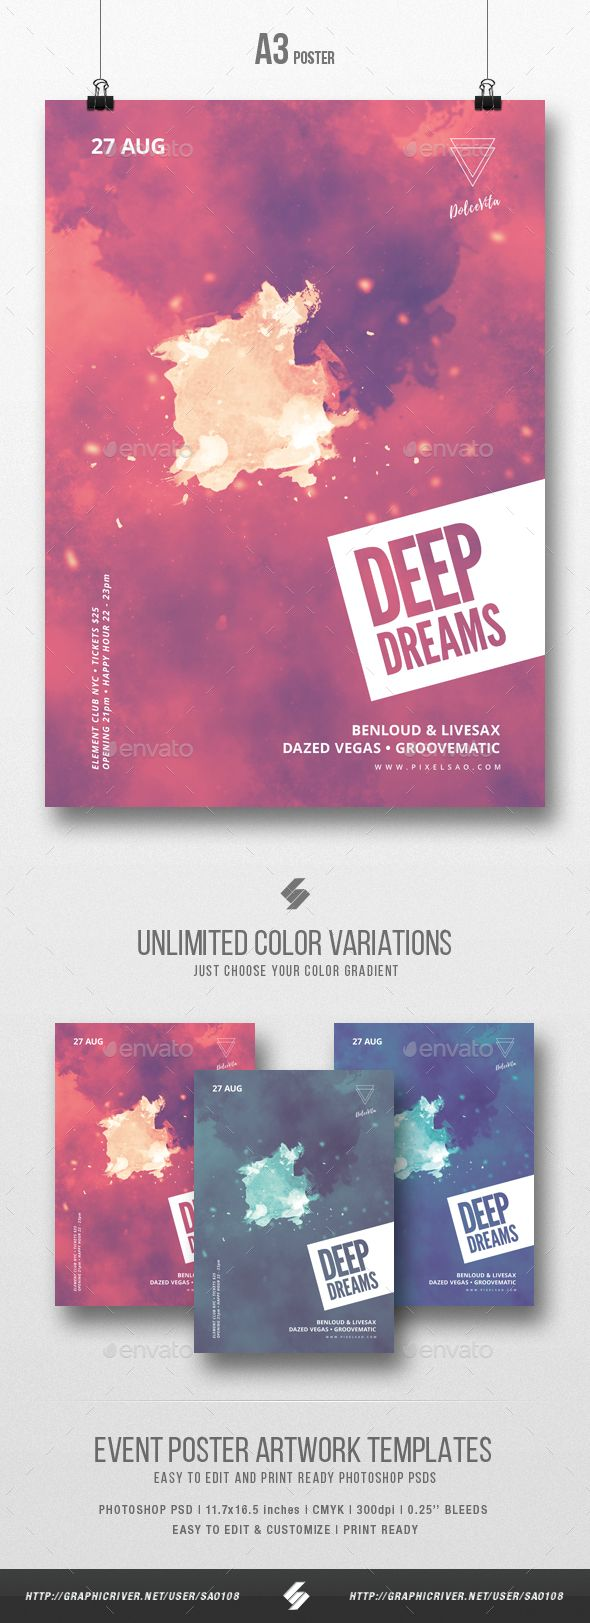 Deep Dreams - Minimal Party Flyer / Poster Template A3